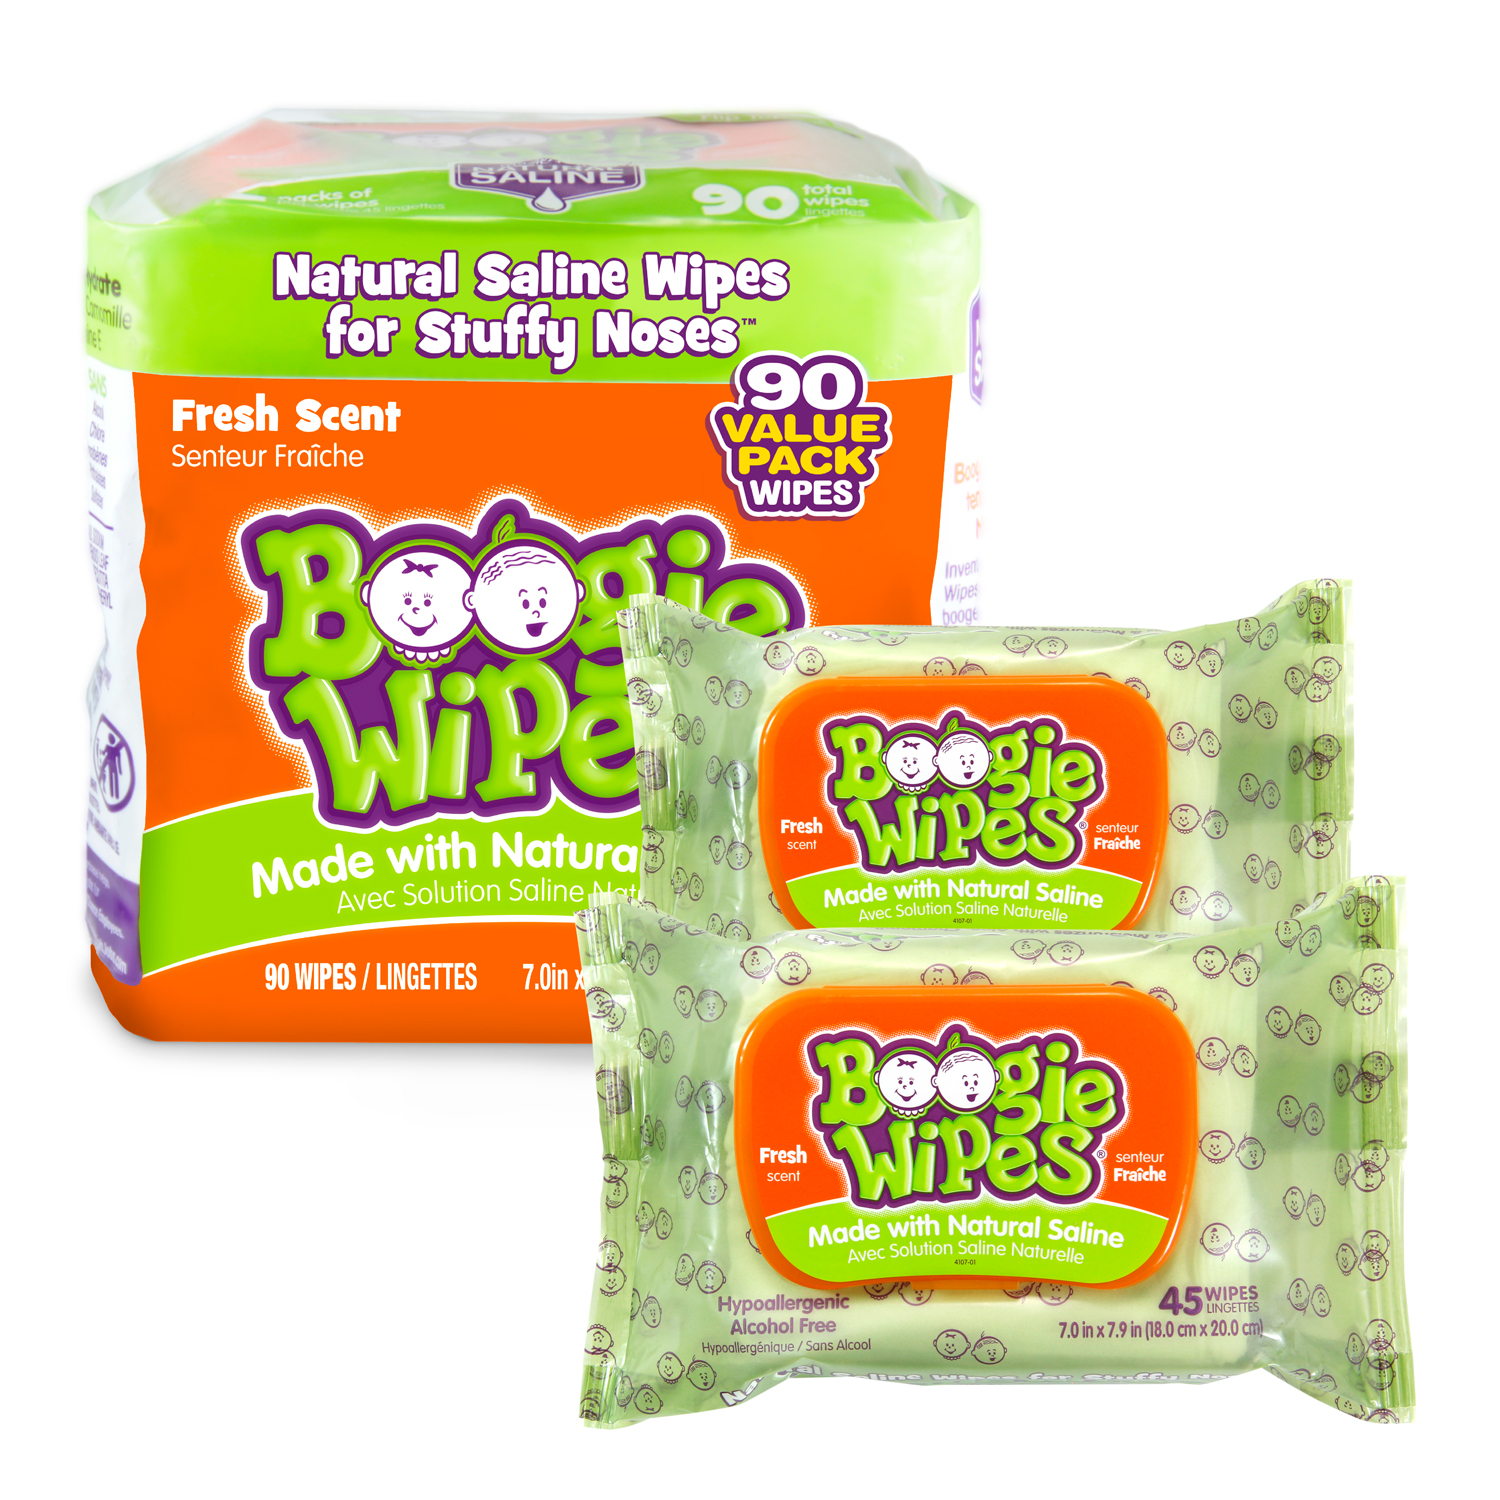 Boogie Wipes fresh scent 90 count value pack (2 packs of 45)